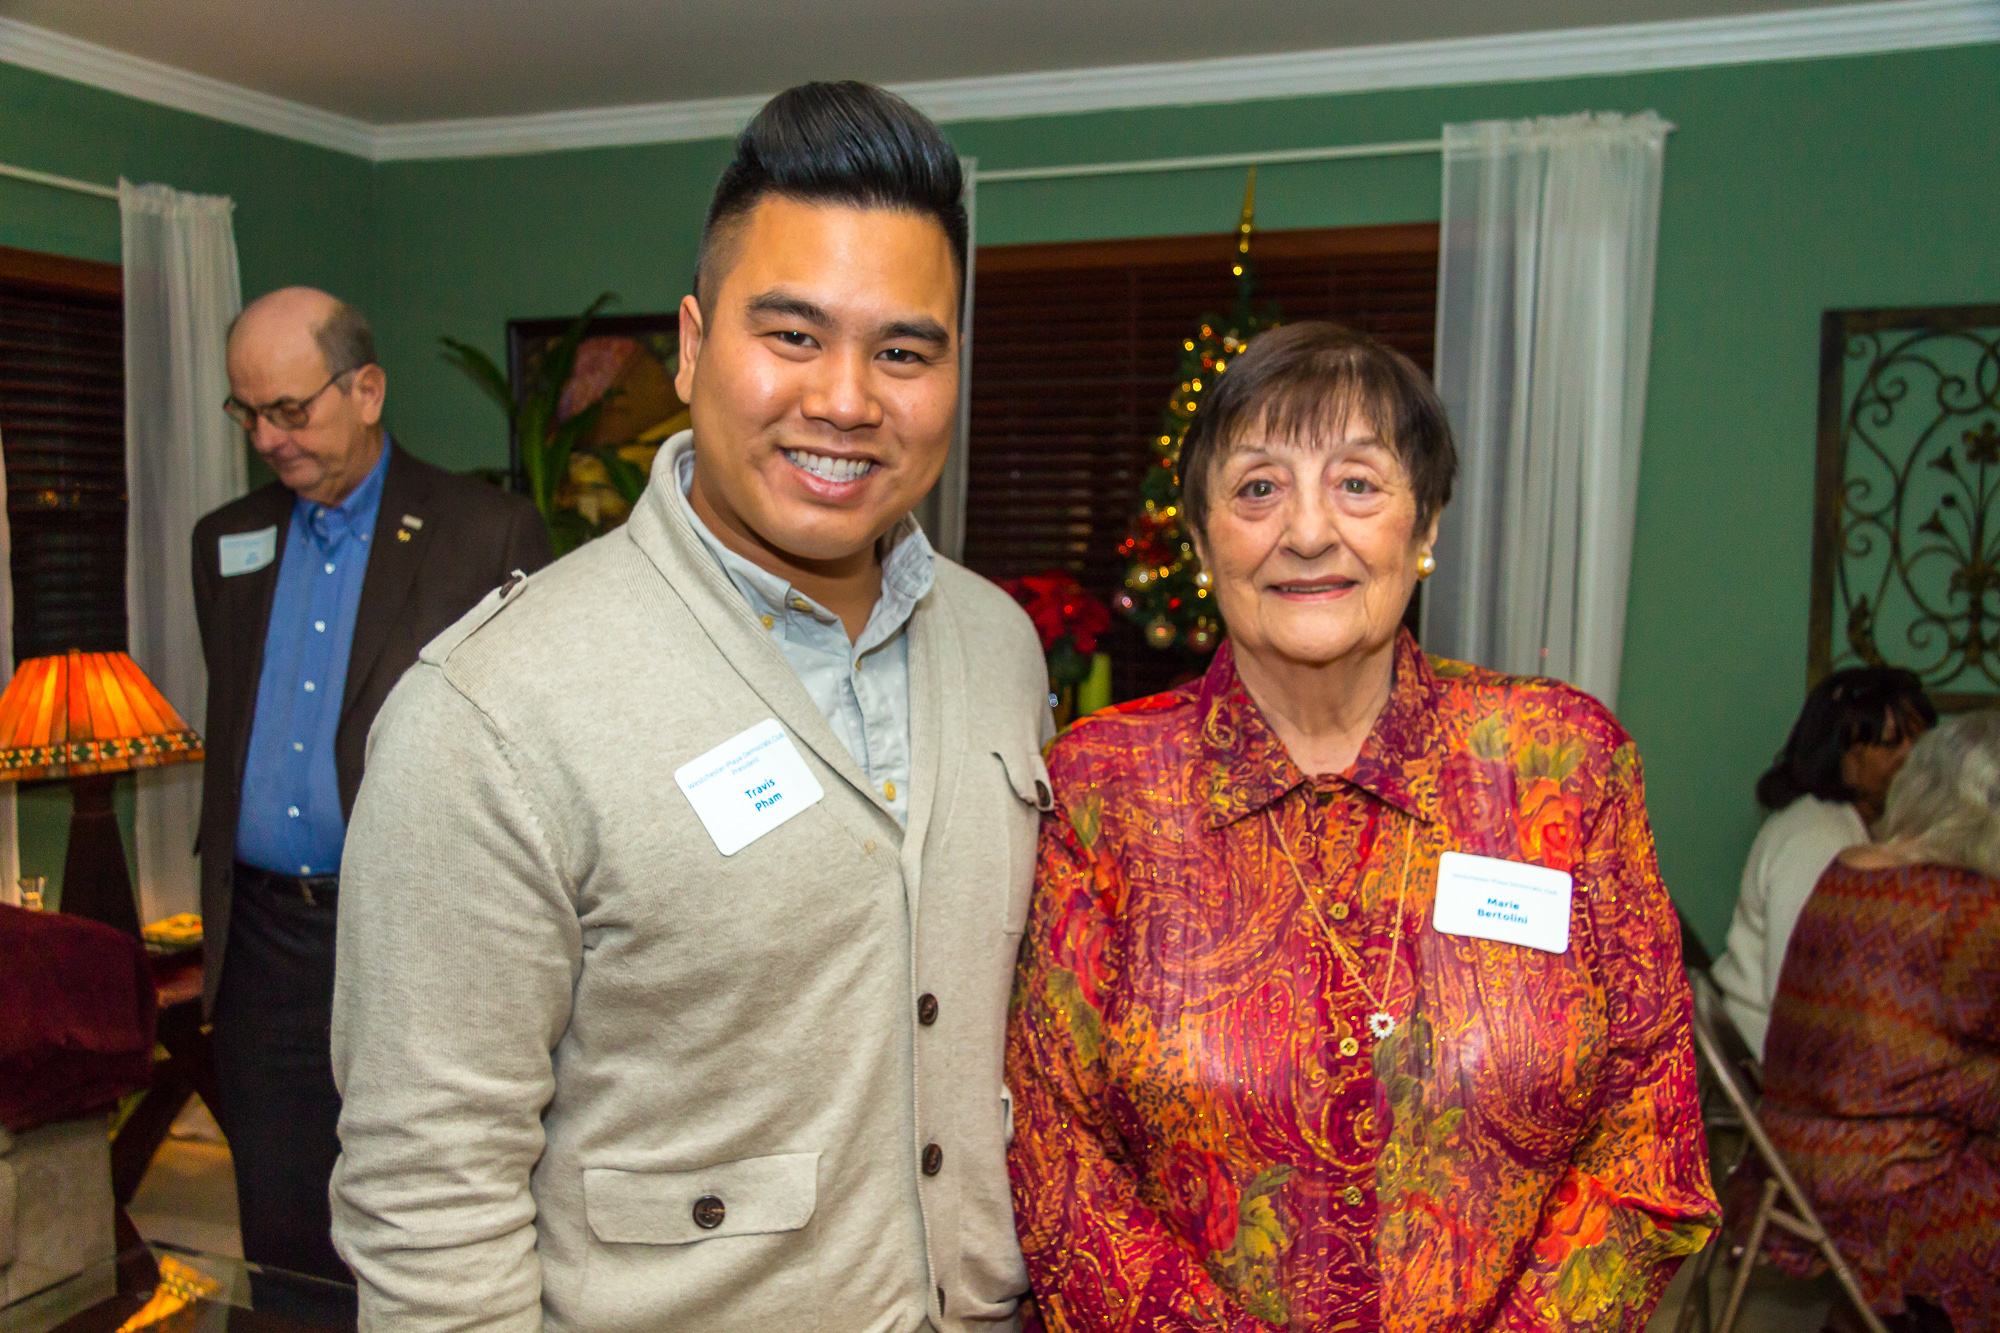 Westchester-Playa Democratic Club Holiday Party 2015 -3.jpg